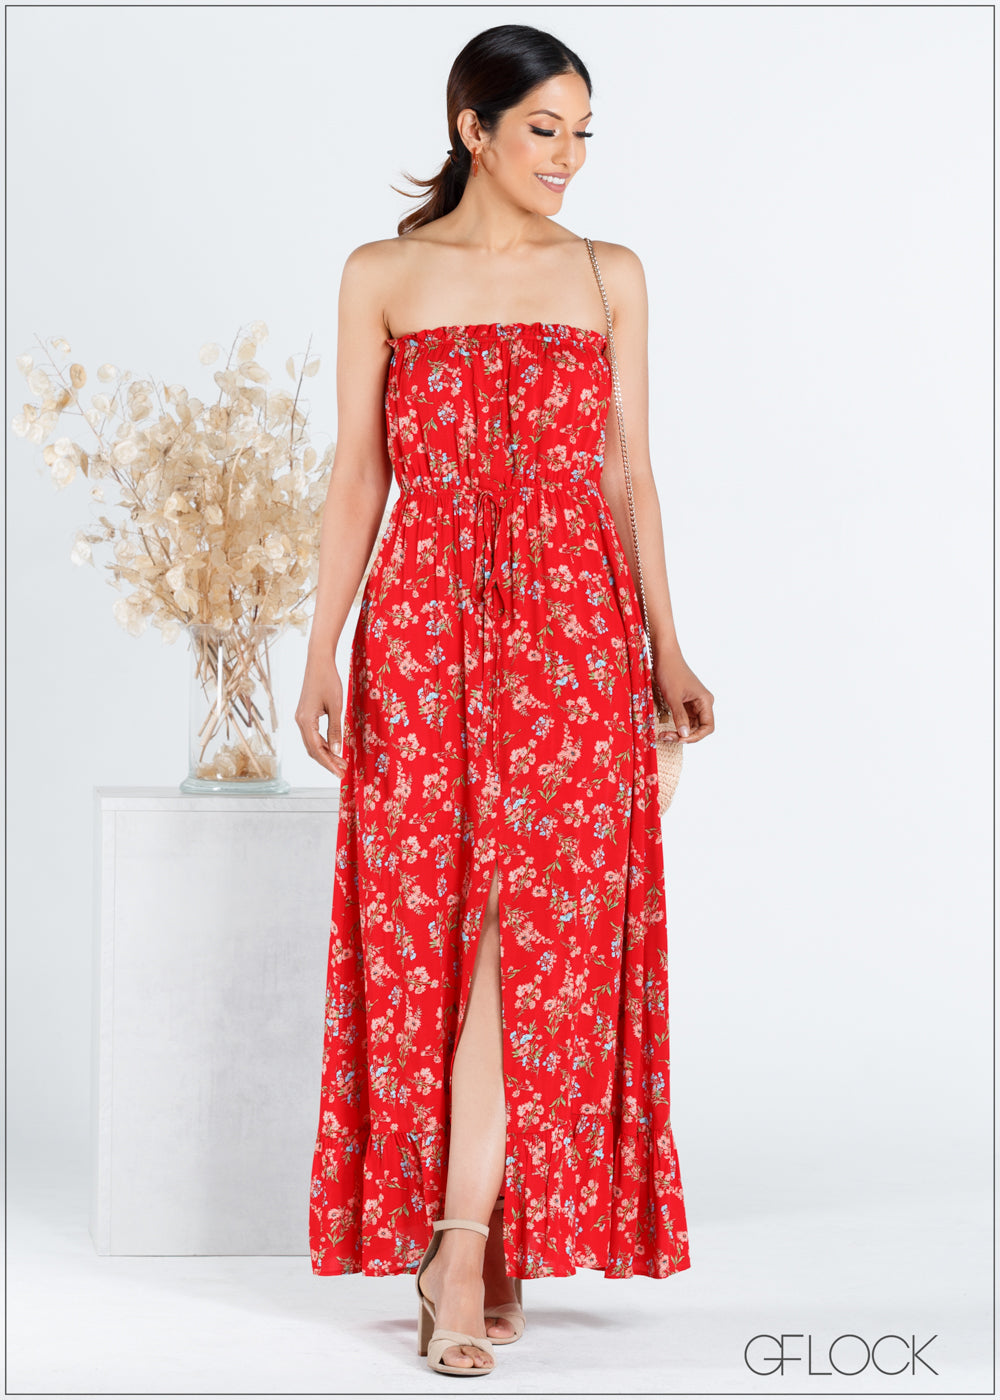 Floral Strapless Maxi Dress - CC704